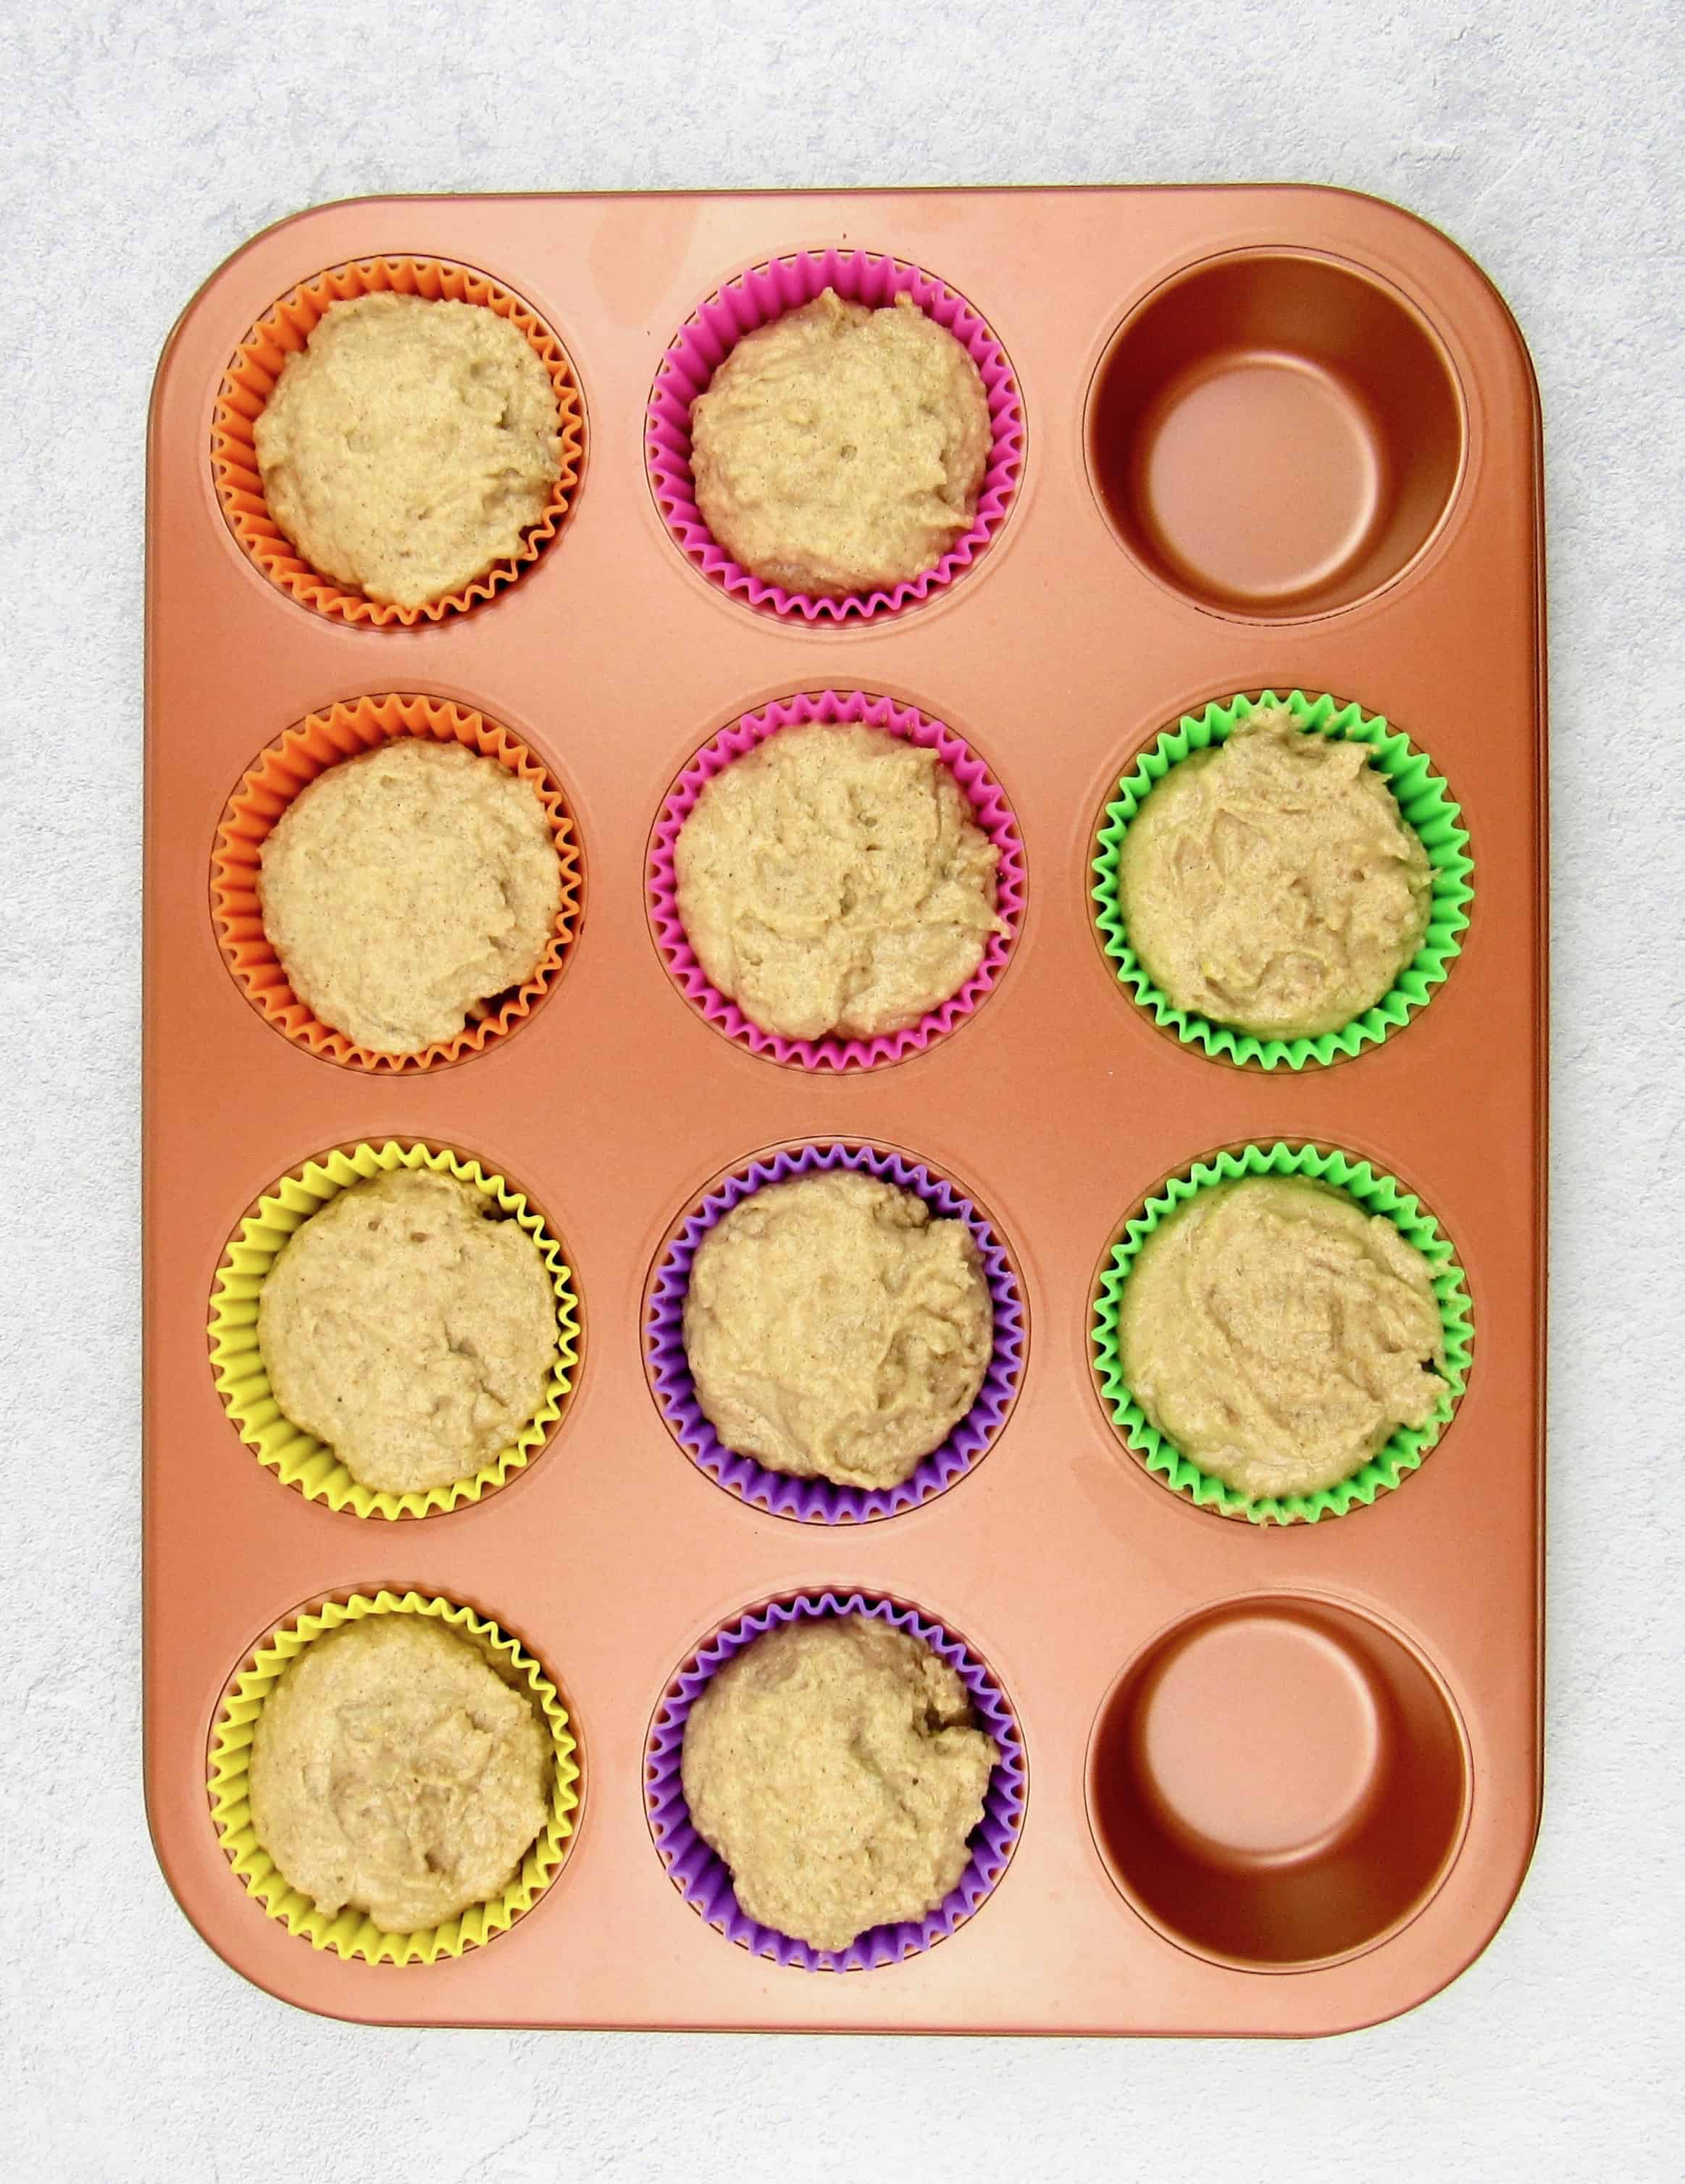 unbaked mock apple muffin batter in muffin pan